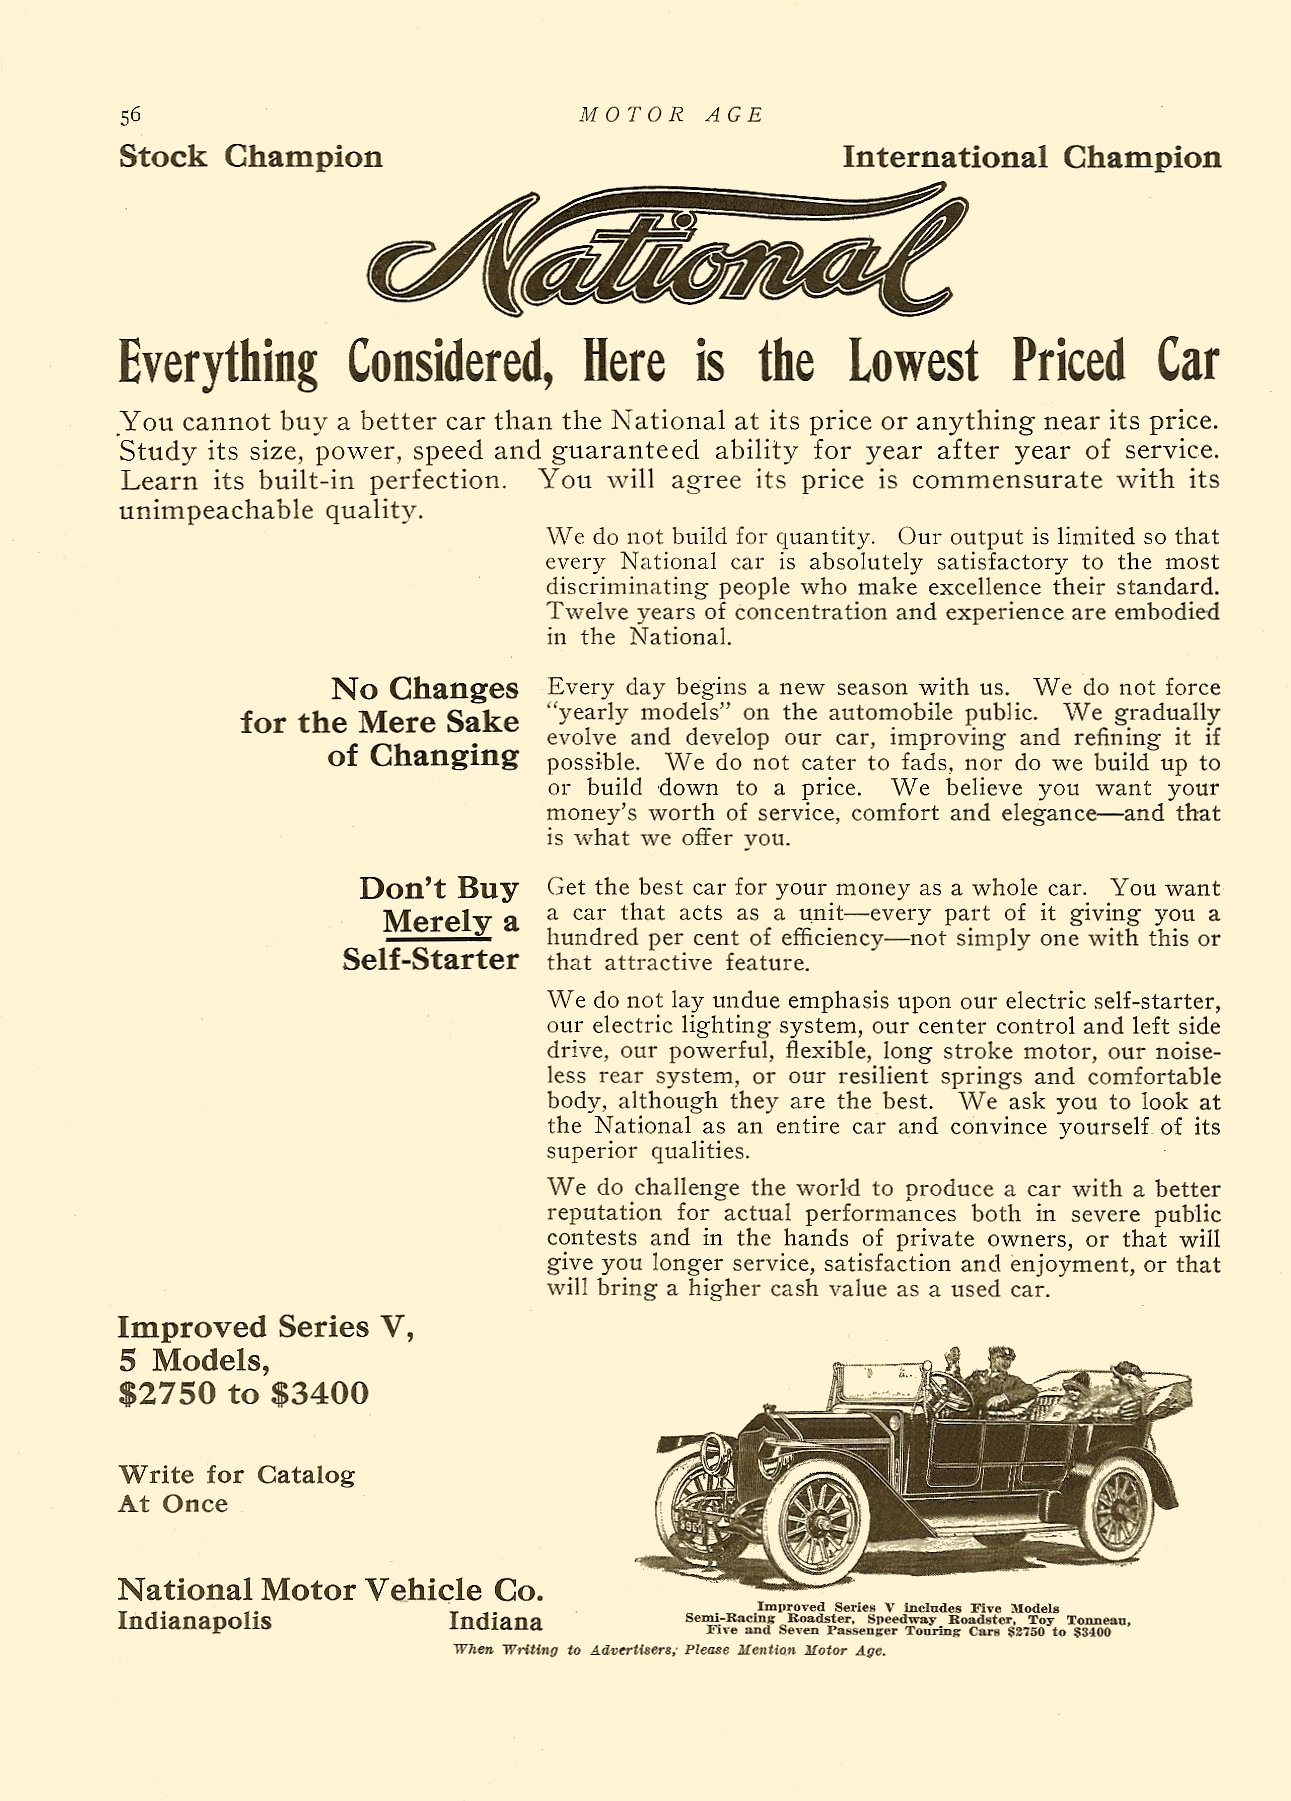 1913 NATIONAL Improved Series V, 5 Models Everything Considered, Here is the Lowest Priced Car 1913 Motor Age magazine 9″x12″ page 56